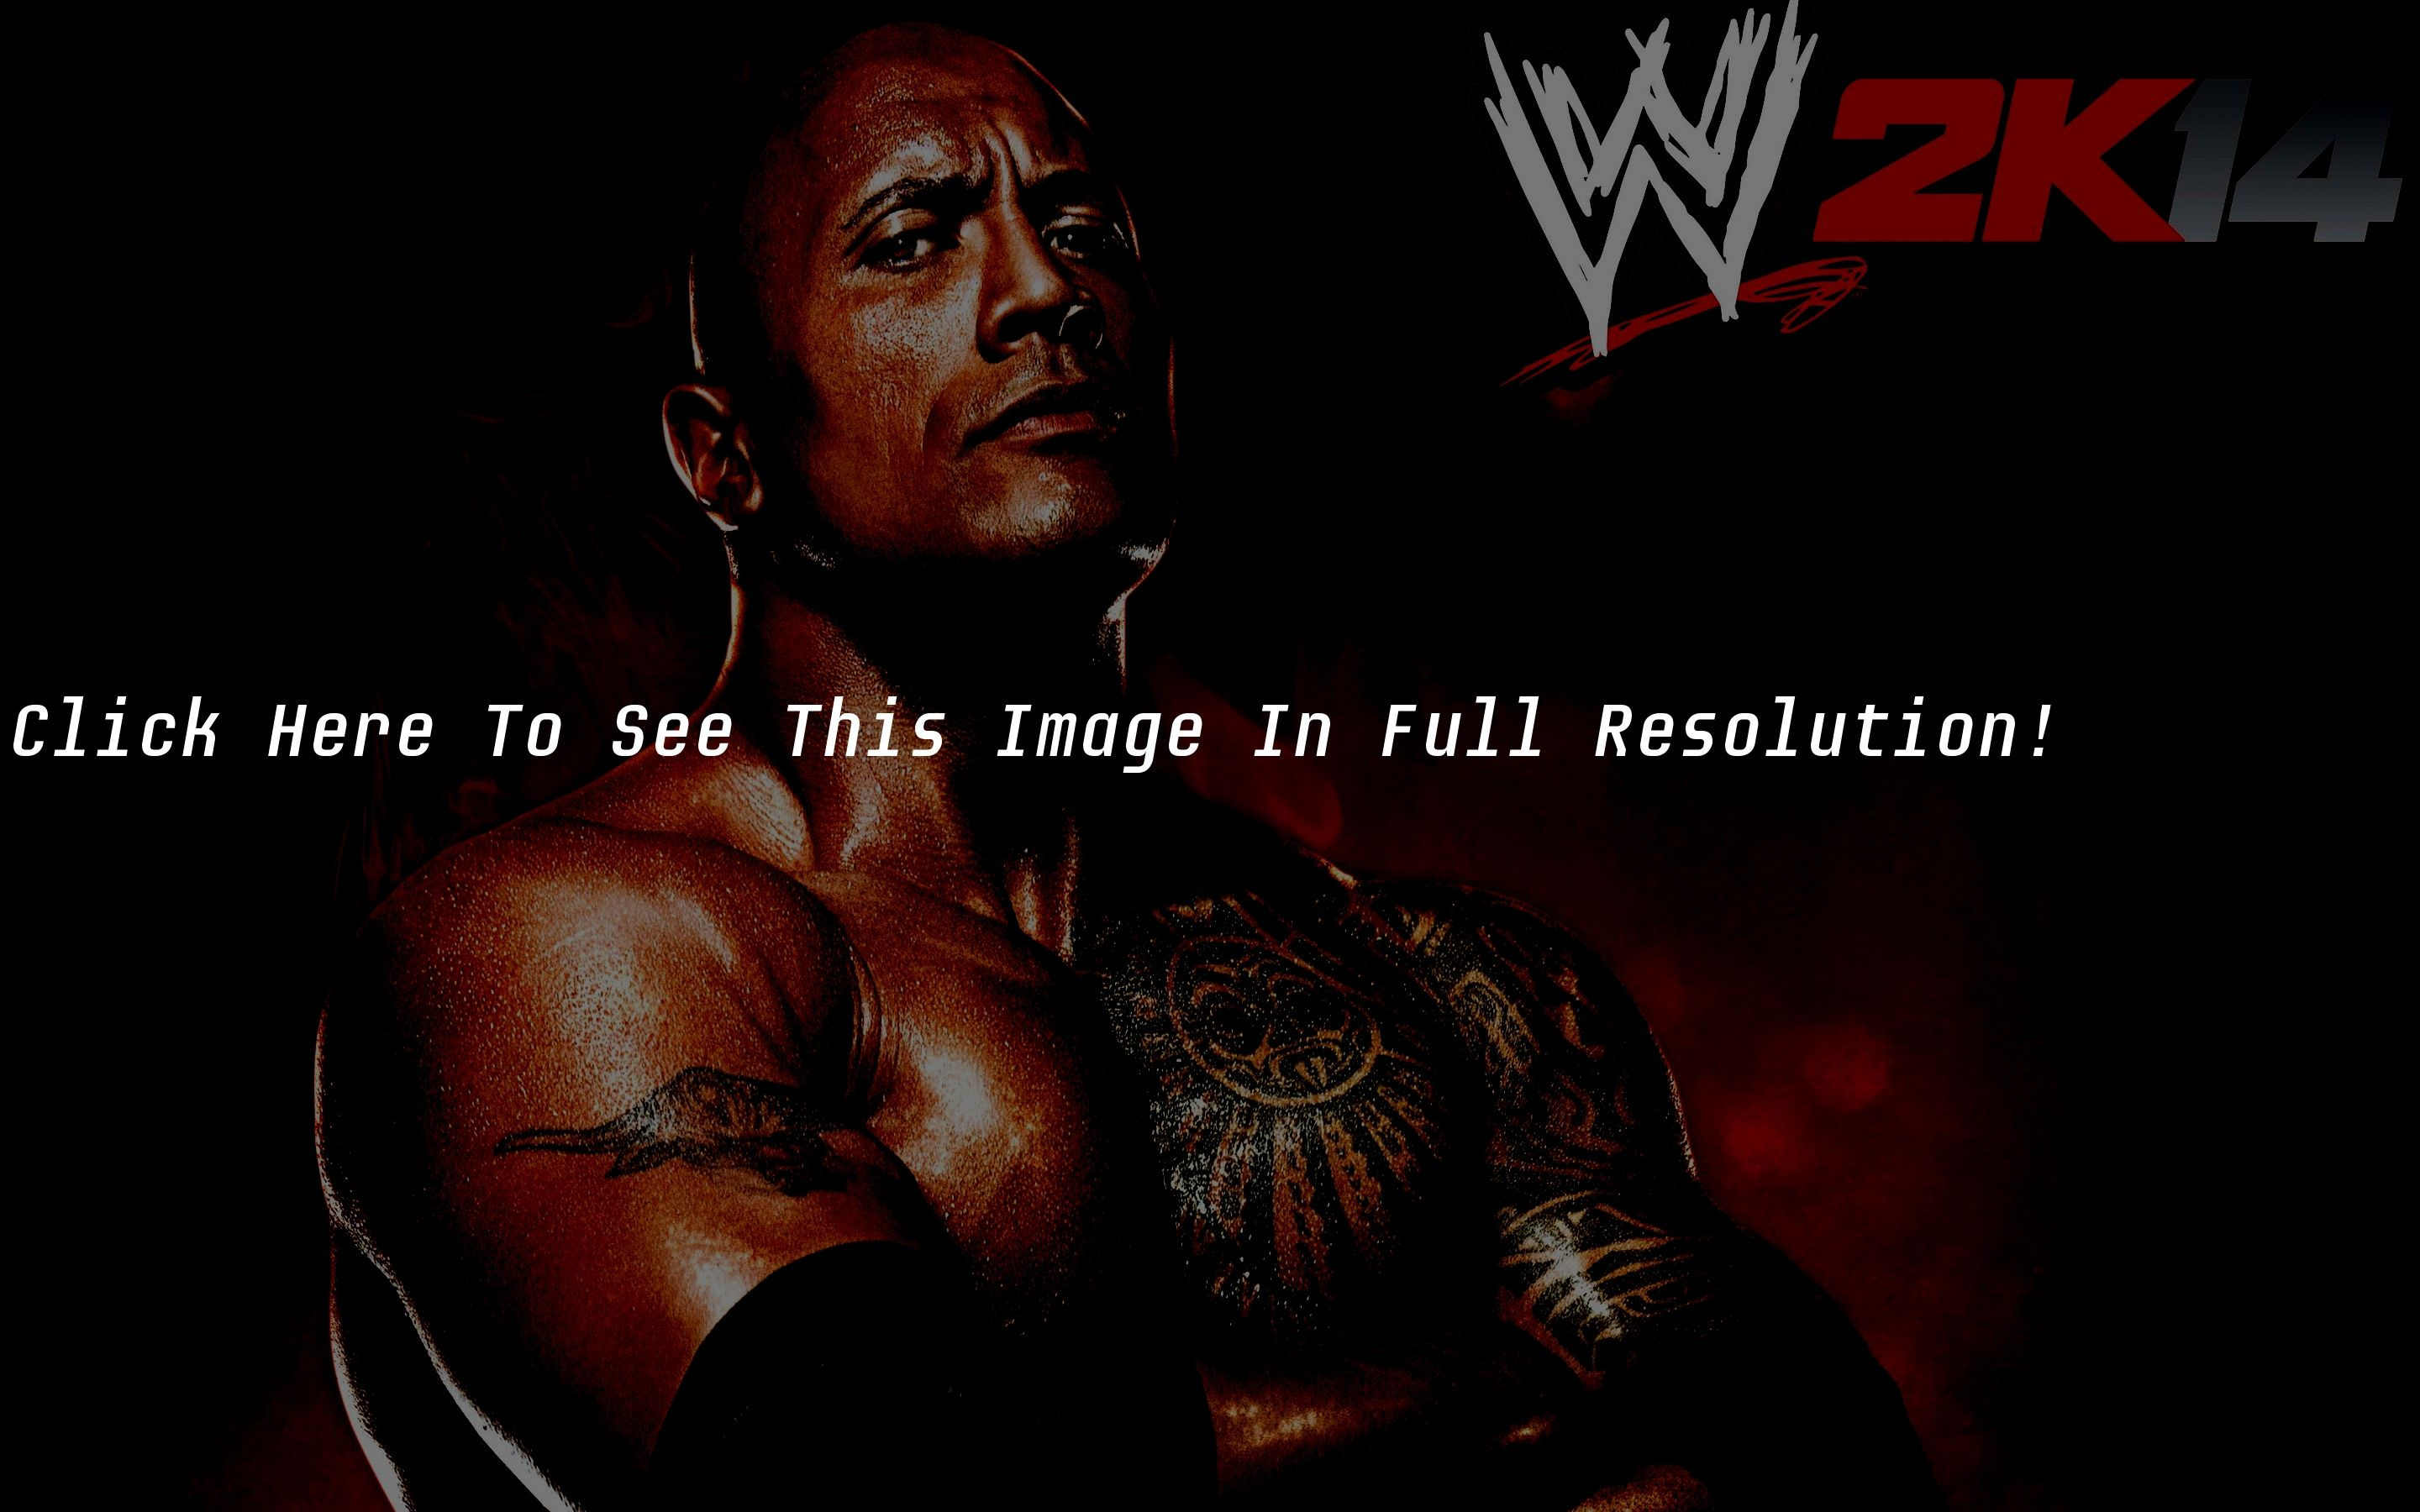 wwe 2k14 game the rock desktop wallpaper hd | verywallpapers